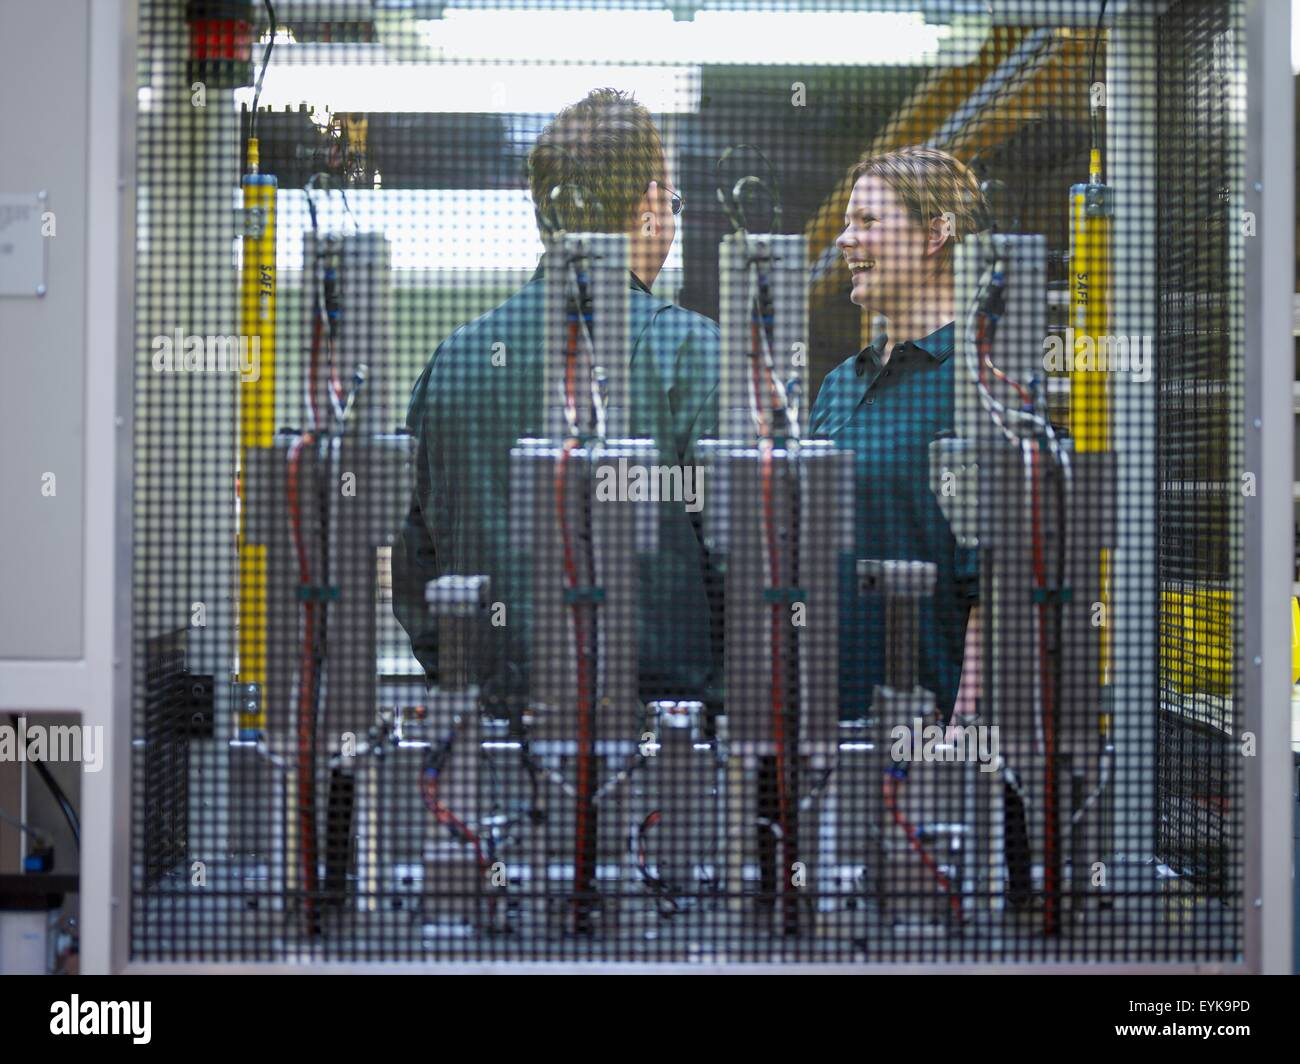 Workers in discussion on factory floor - Stock Image